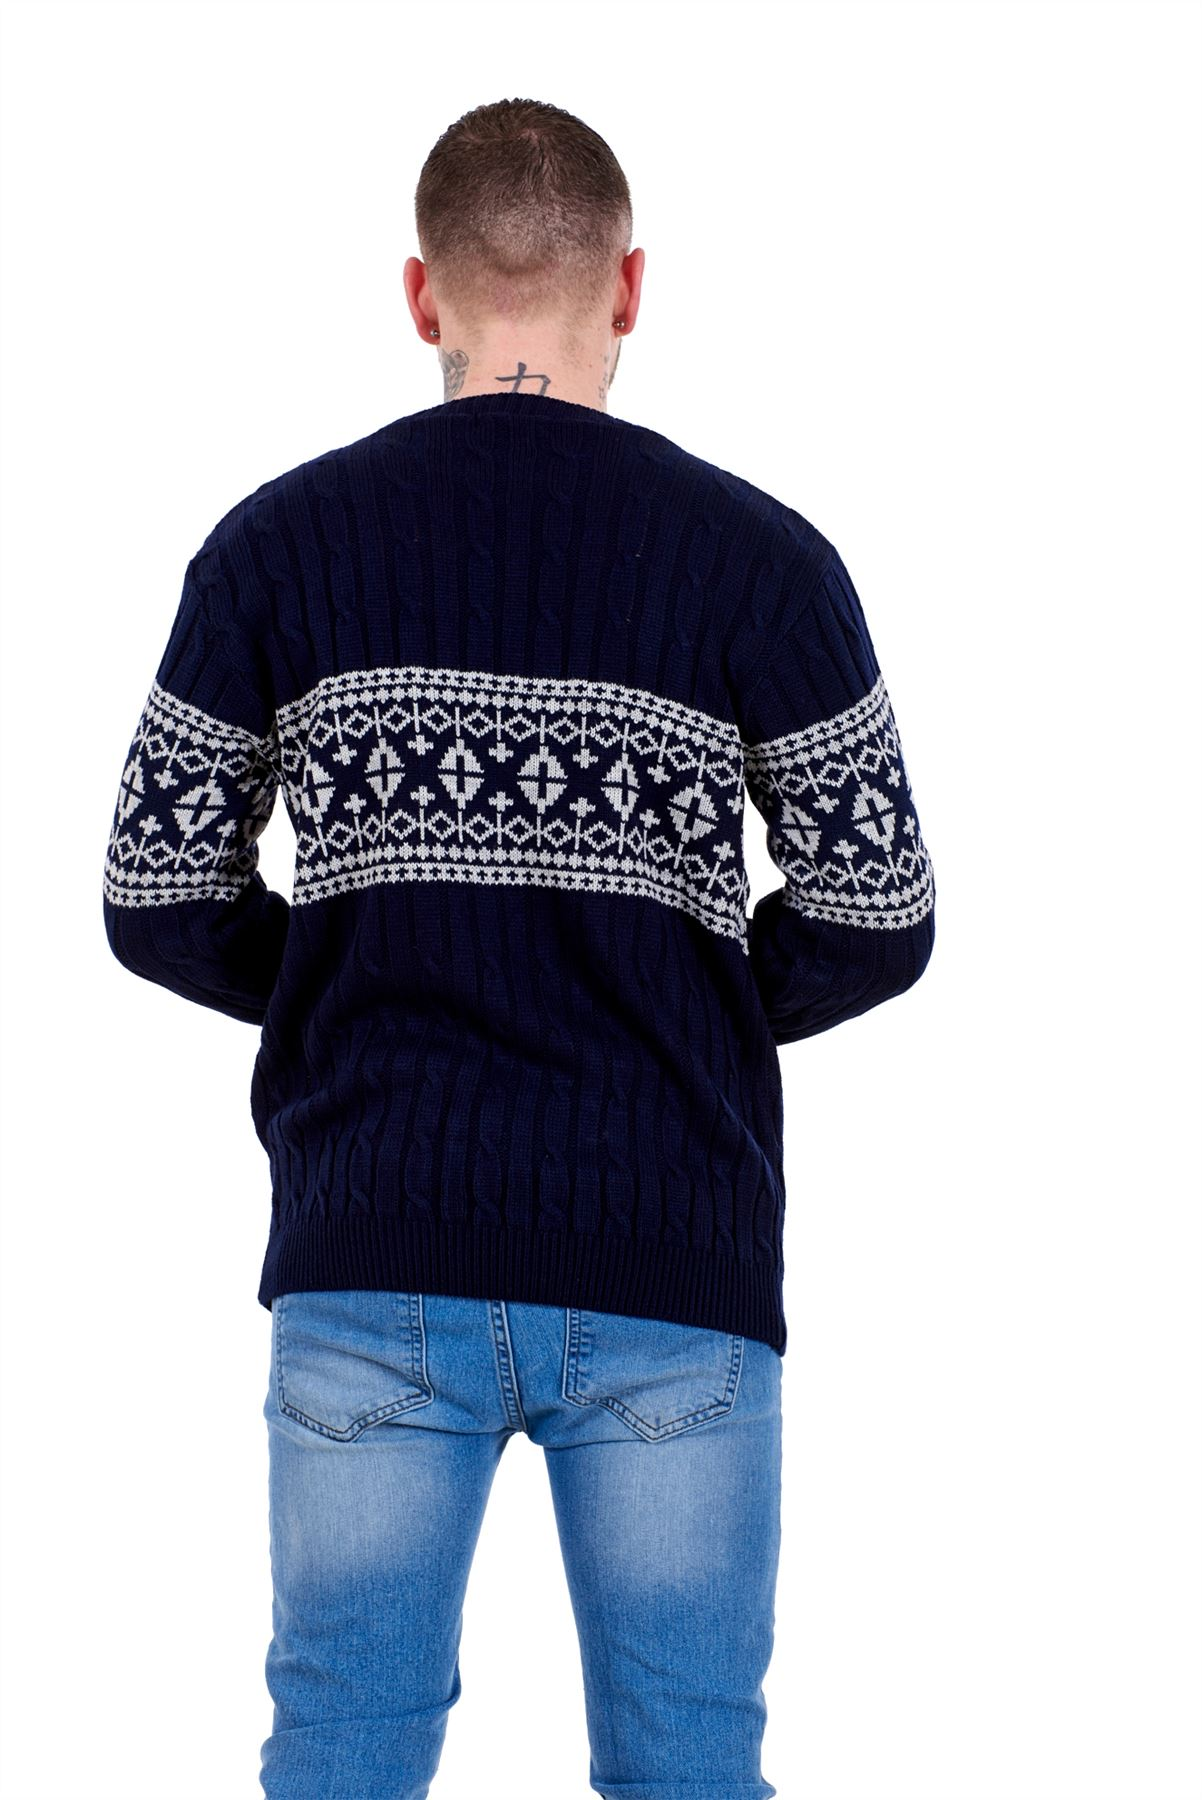 Mens-New-Cable-Knit-Jacquard-Long-Sleeve-Pullover-Jumper-Sweater-S-to-XL thumbnail 21